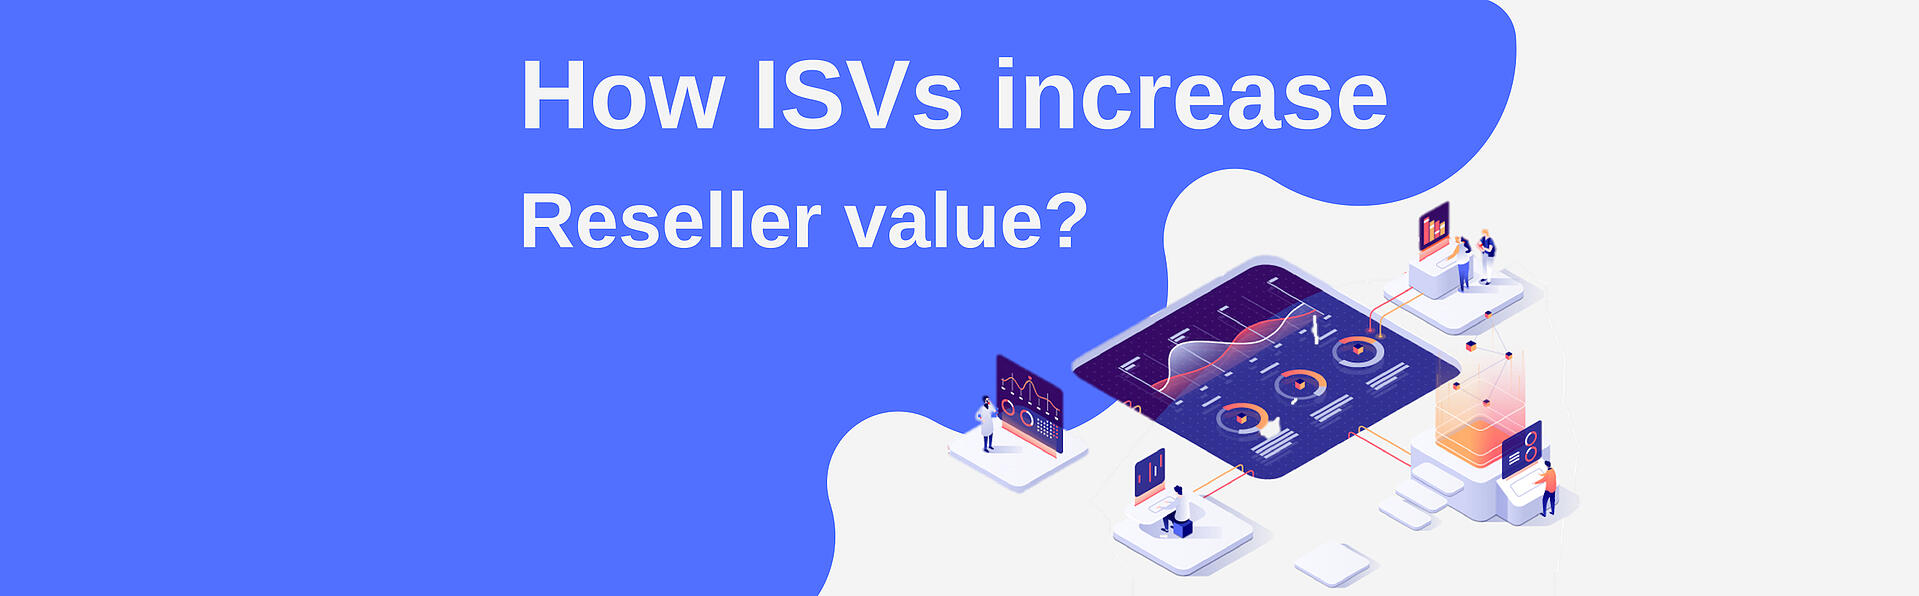 How ISVs increase Reseller value